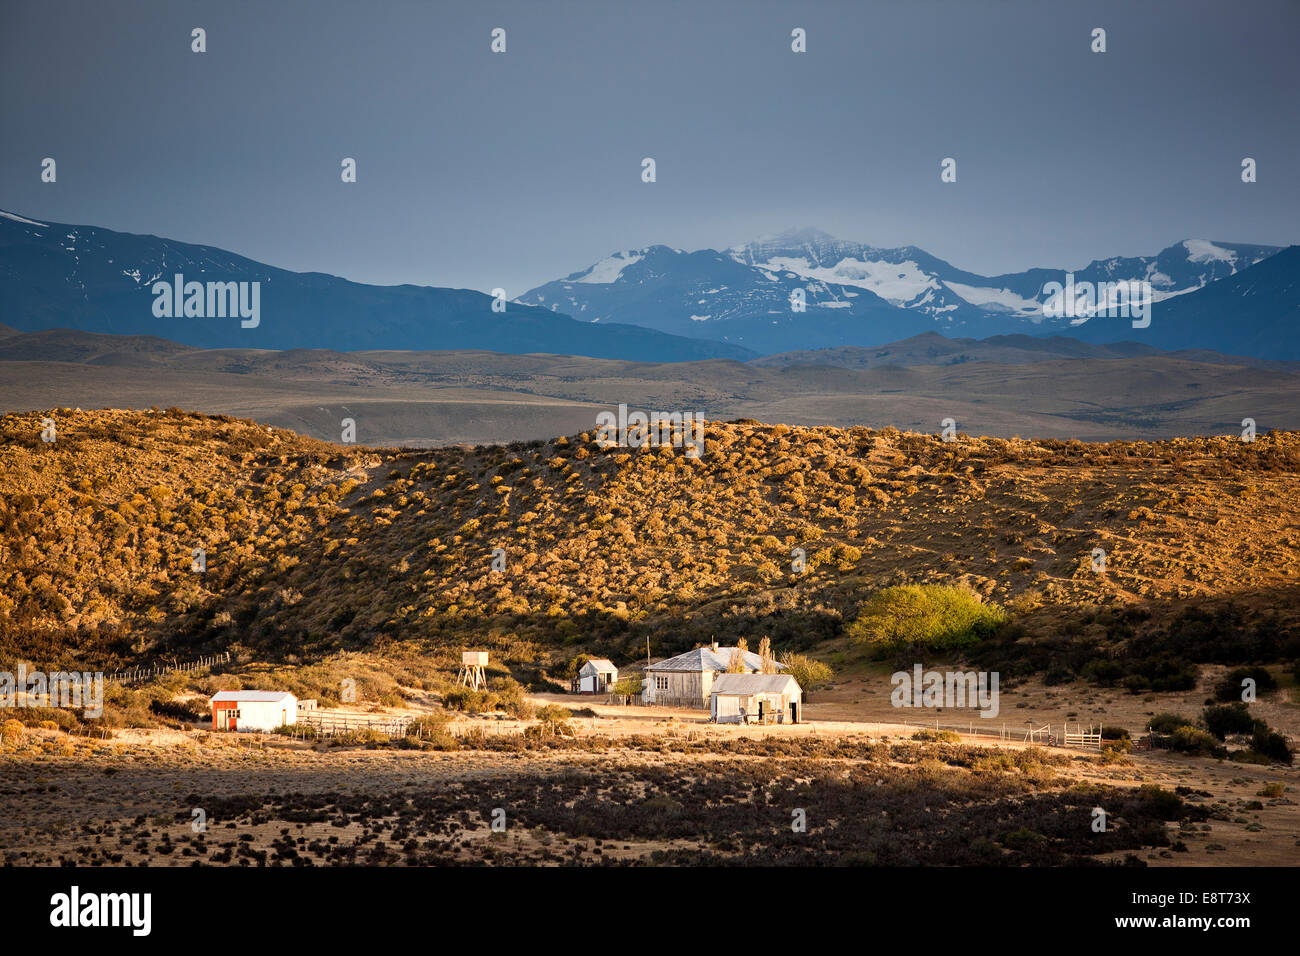 Old farm in Patagonia, Chile, South America - Stock Image